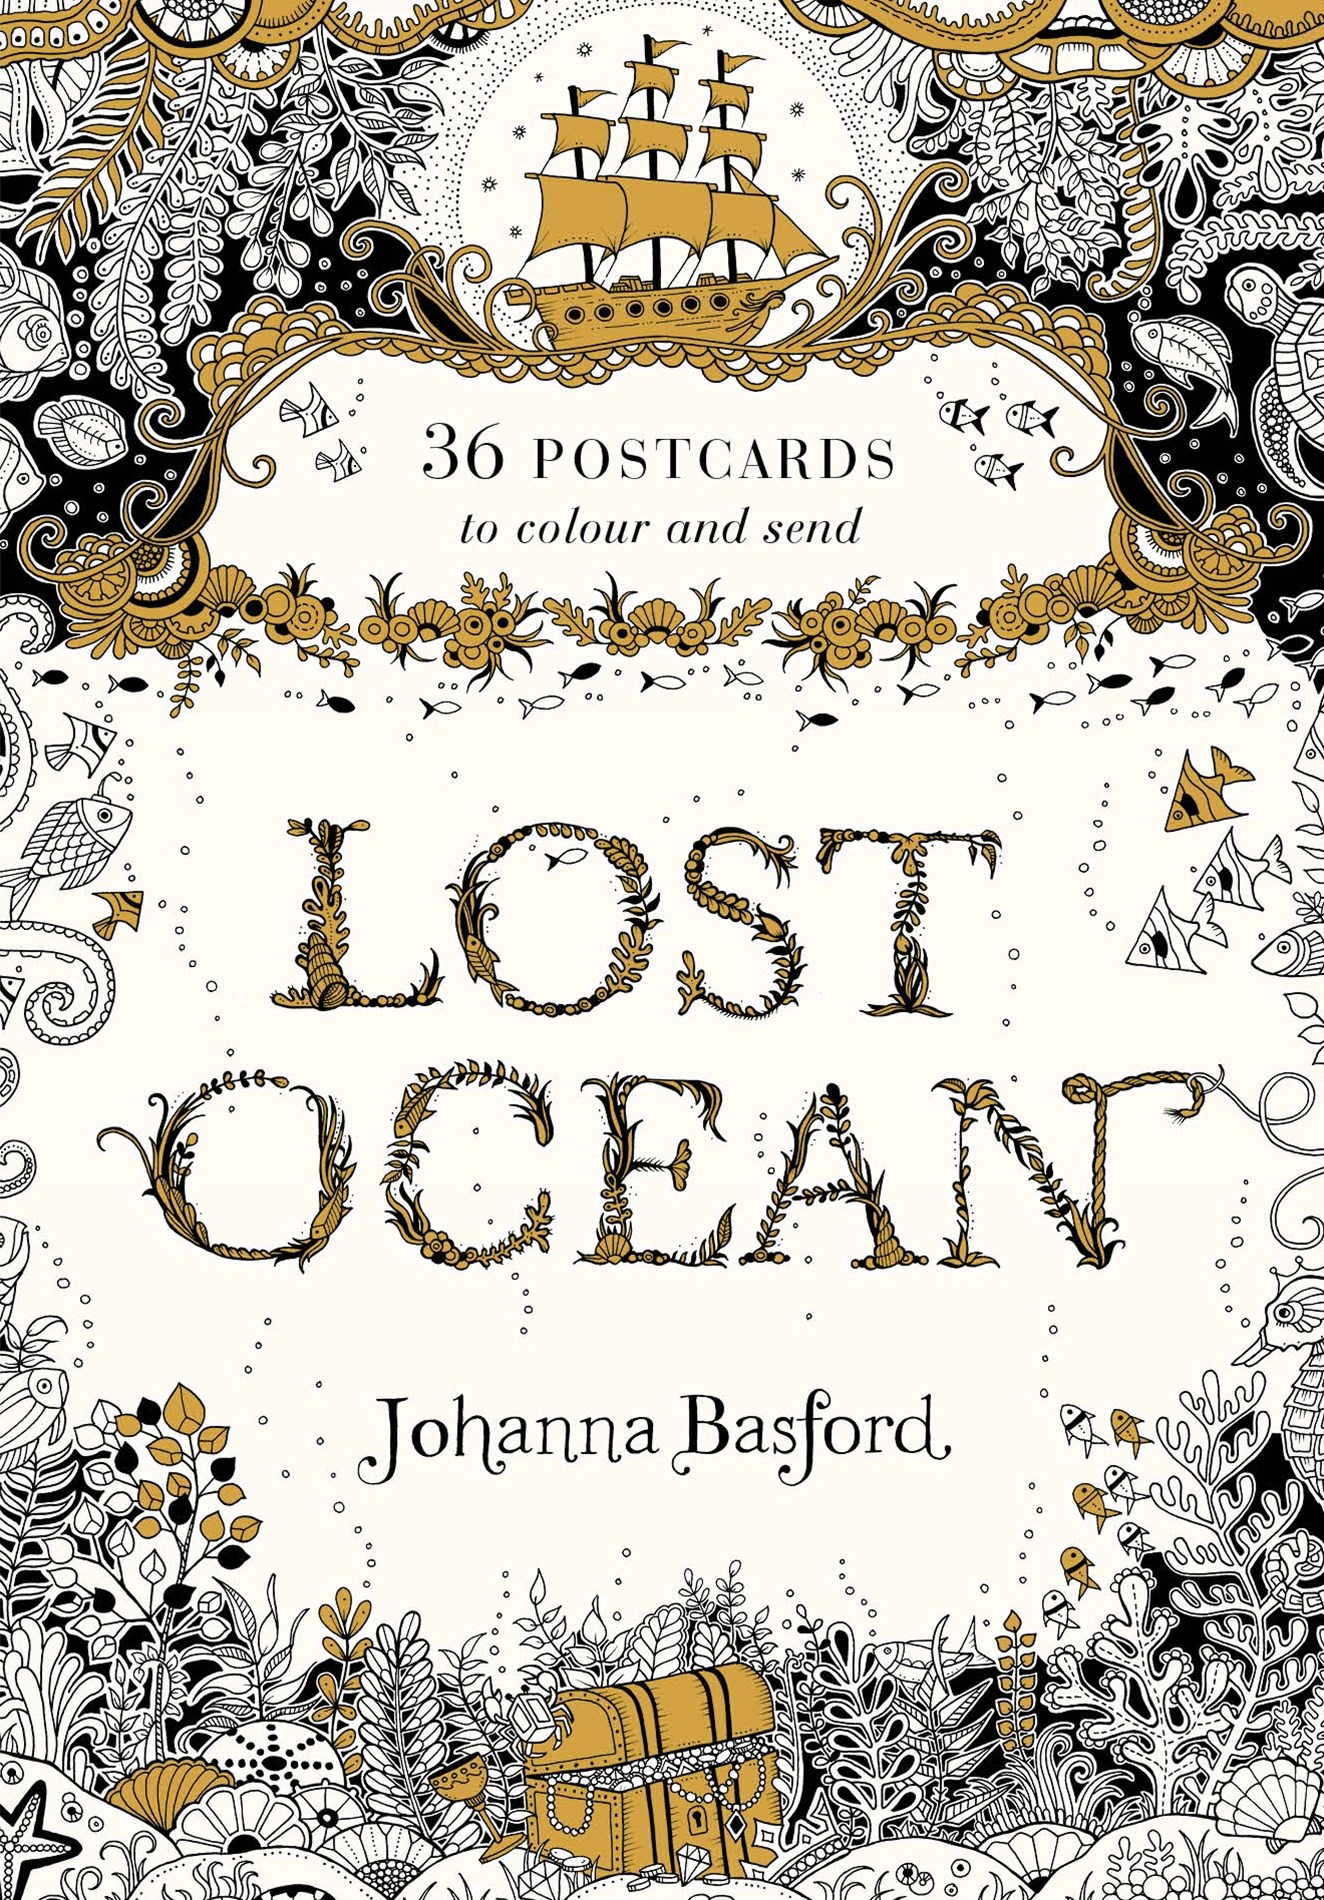 Lost Ocean Postcard Edition: 36 Postcards to Colour and Send